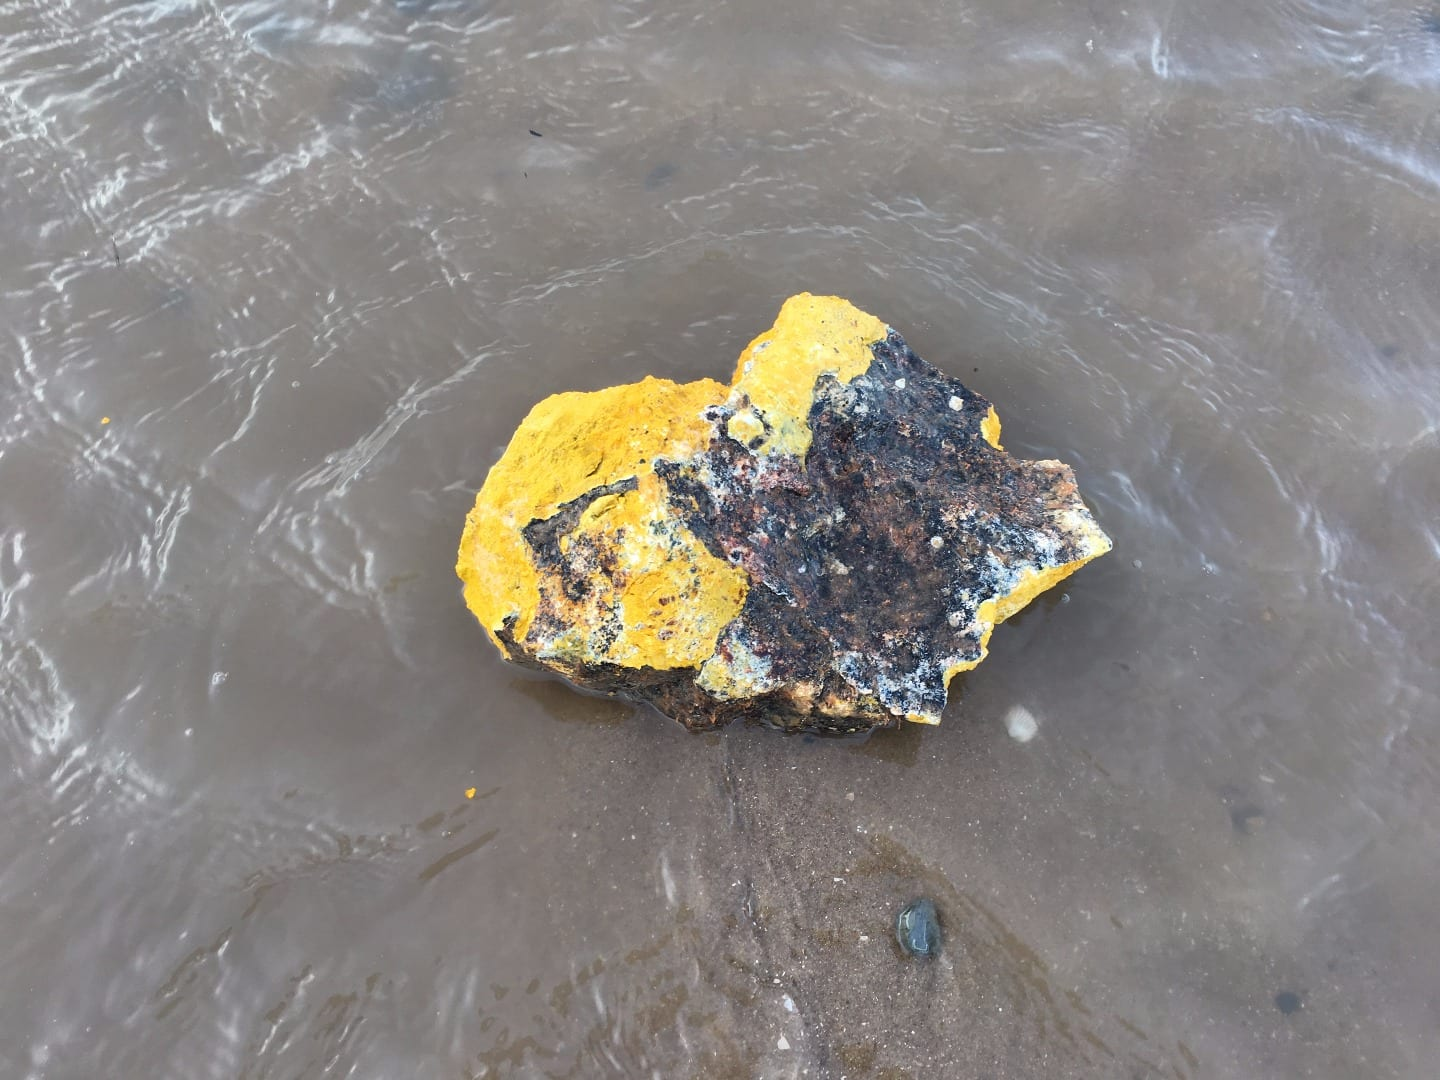 Palm oil at Cleveleys, November 2017. Dog Walkers - Beware of Palm Oil on Beaches